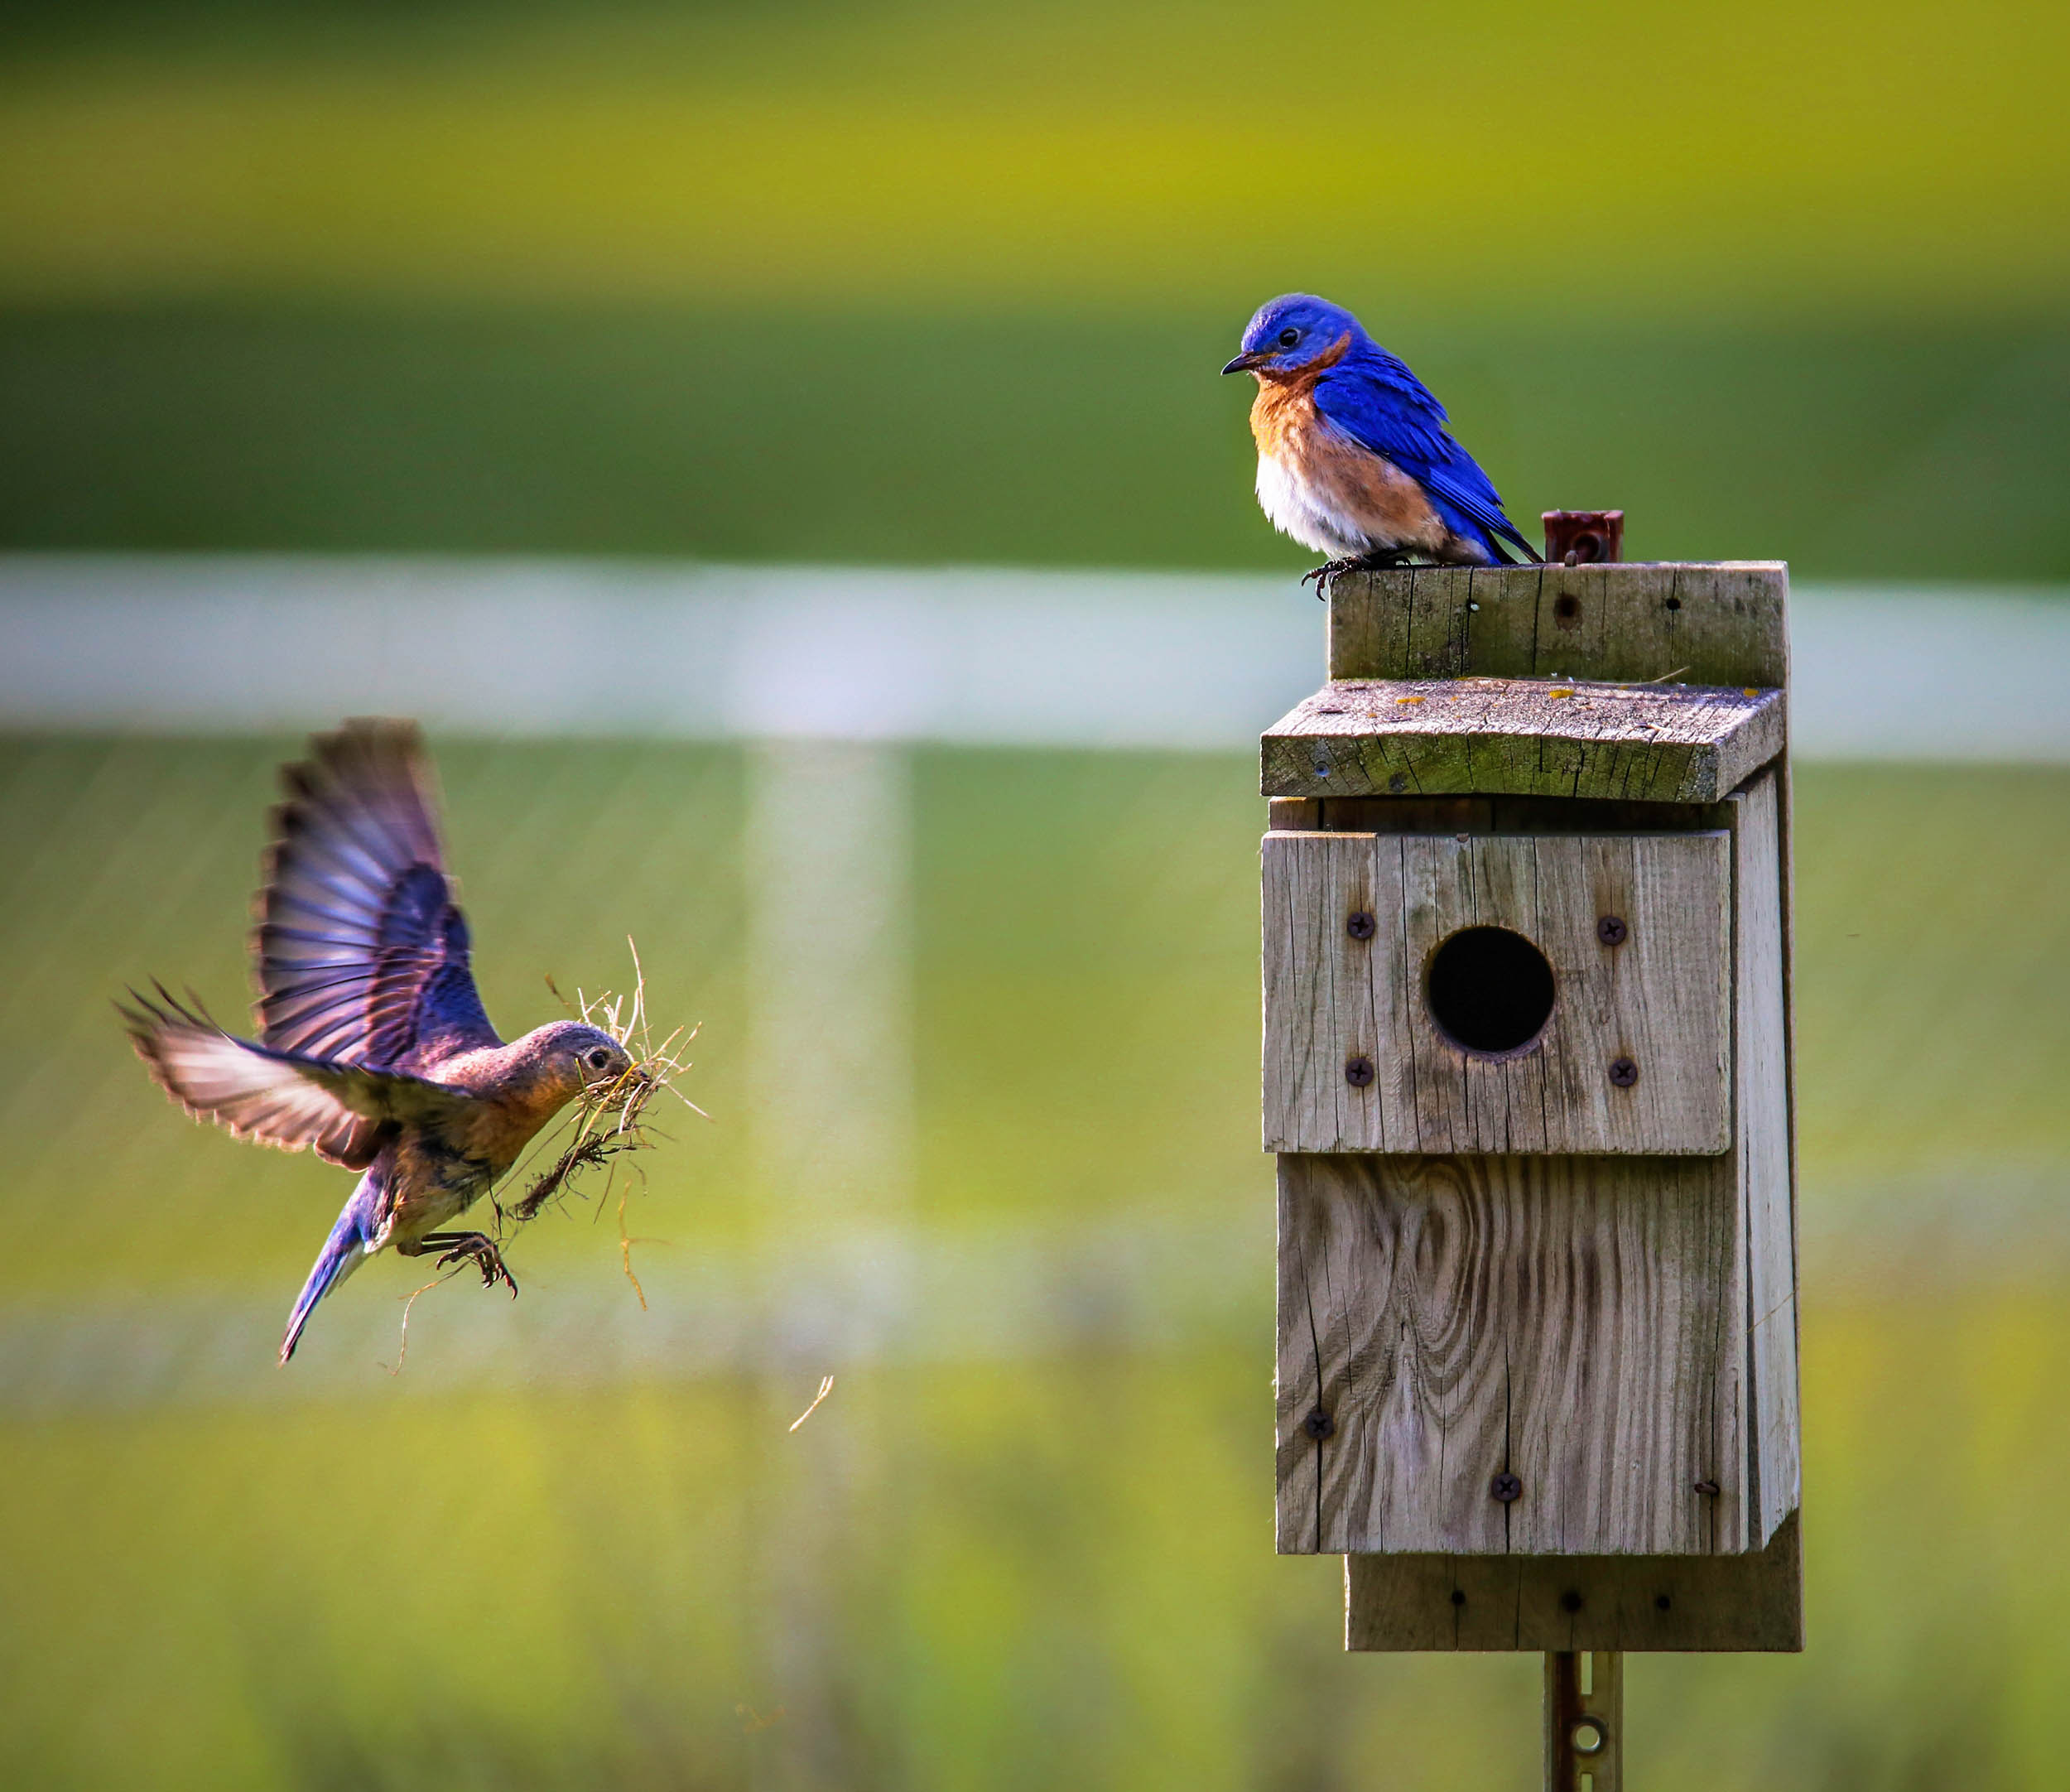 Vogel shutter speed Basics photography Photographing animals in the wild